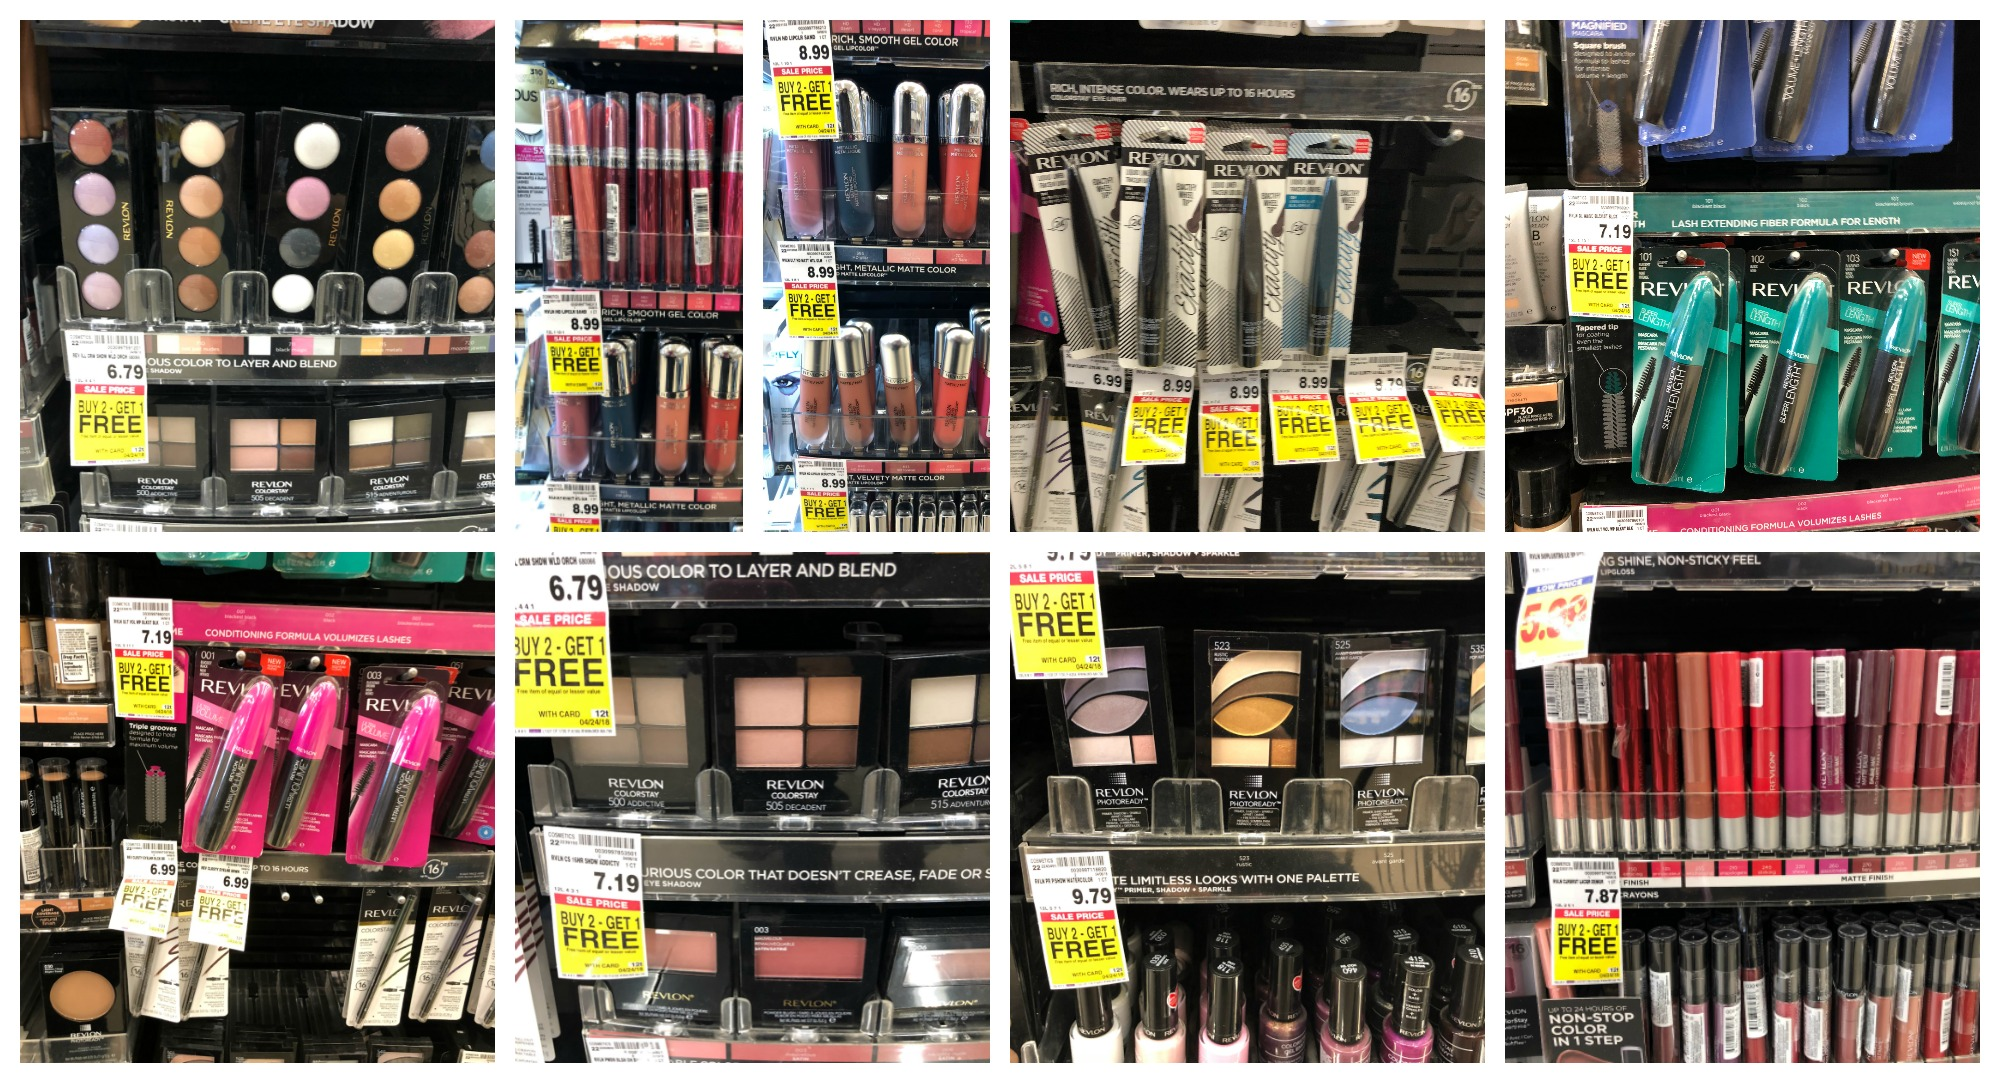 Revlon Makeup Deals at Kroger with B2G1 Free Sale! Pay as